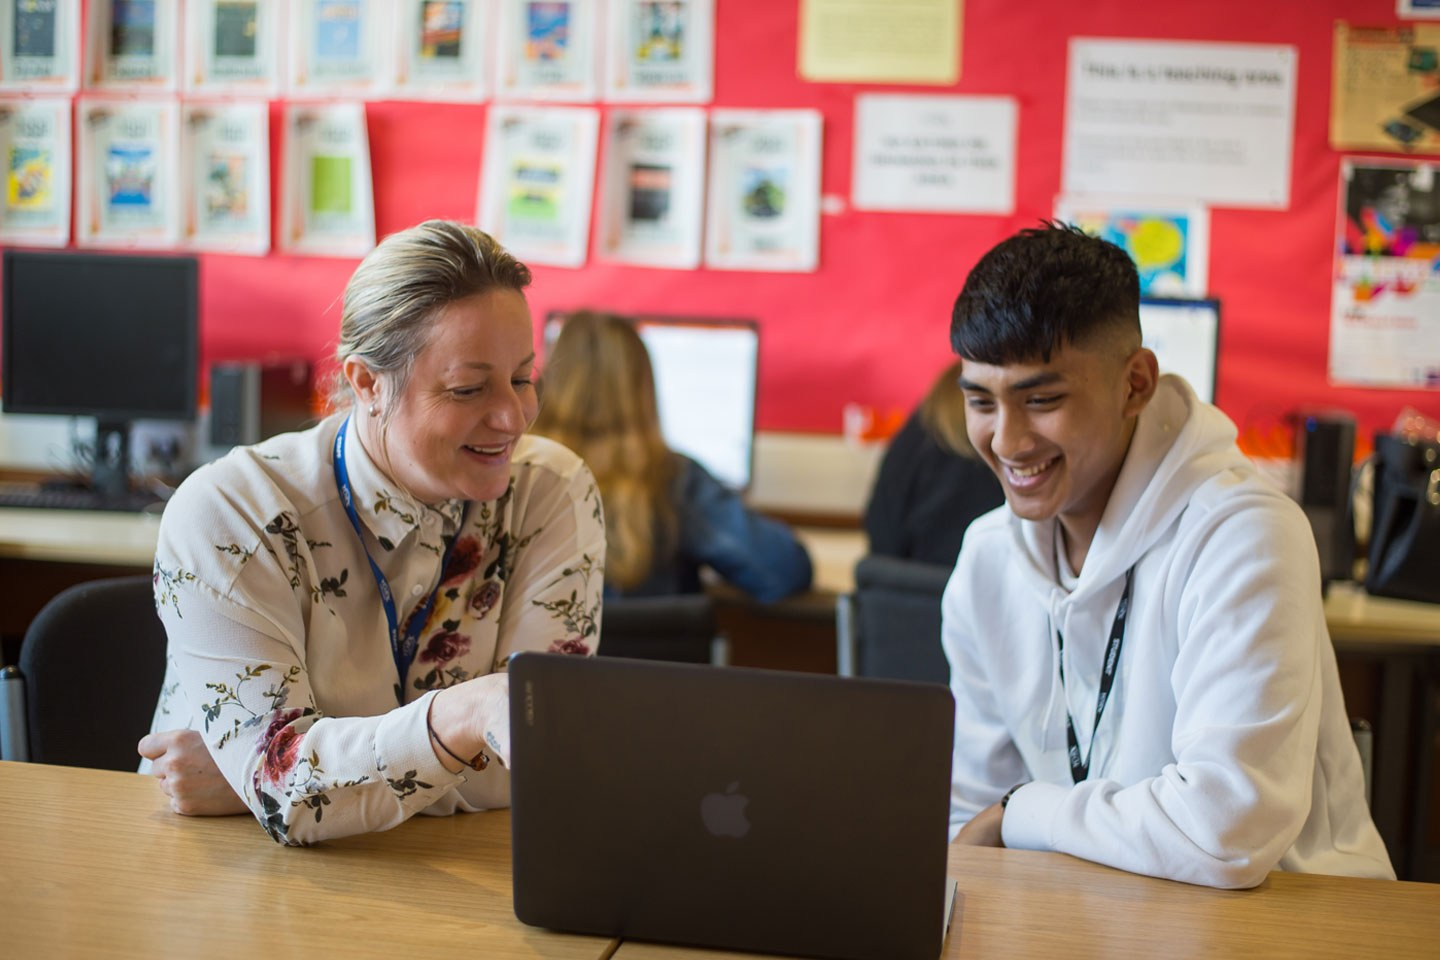 A tutor points to a laptop screen while the student watches, they both smile.